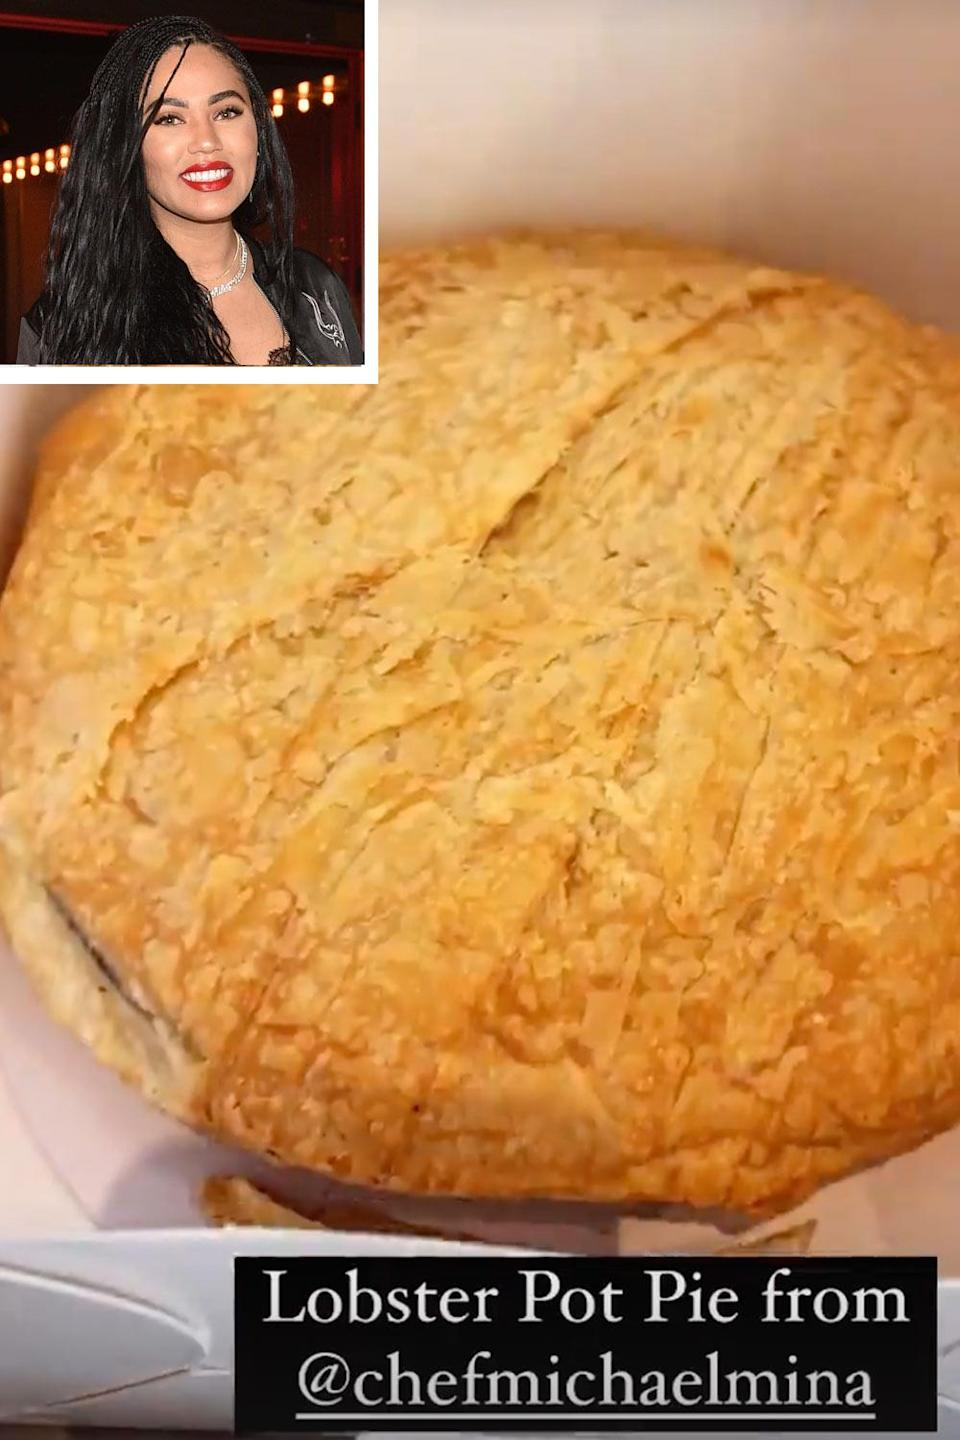 <p>The cookbook author's Easter meal featured a lobster pot pie from chef Michael Mina, Curry's partner in their restaurant International Smoke.</p>